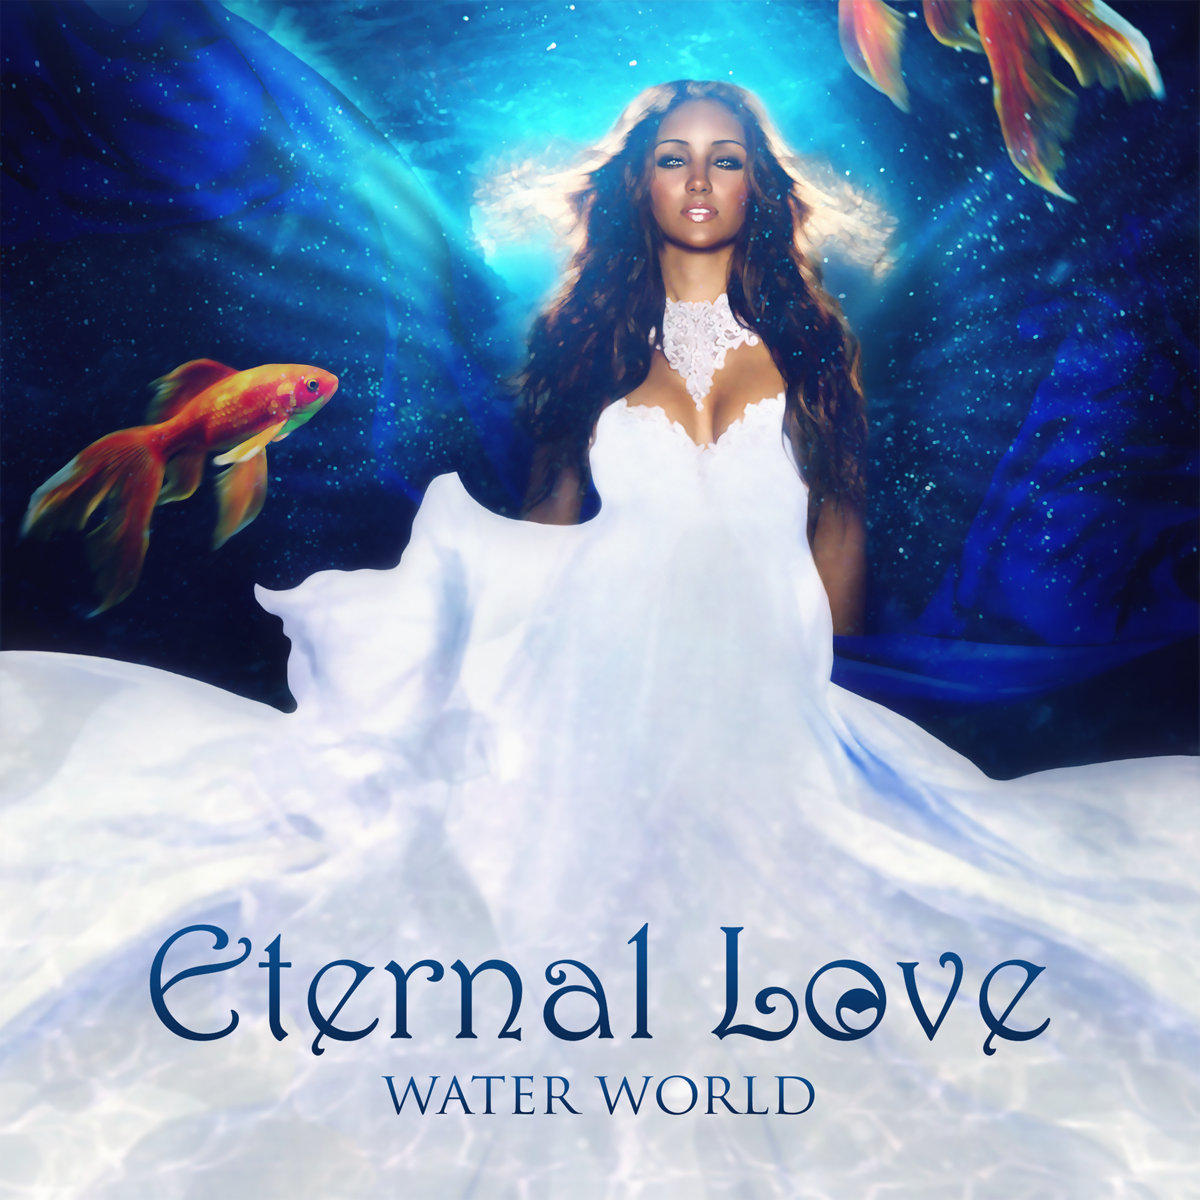 Eternal Love - Water World @ 'Water World' album (ambient, beautiful)